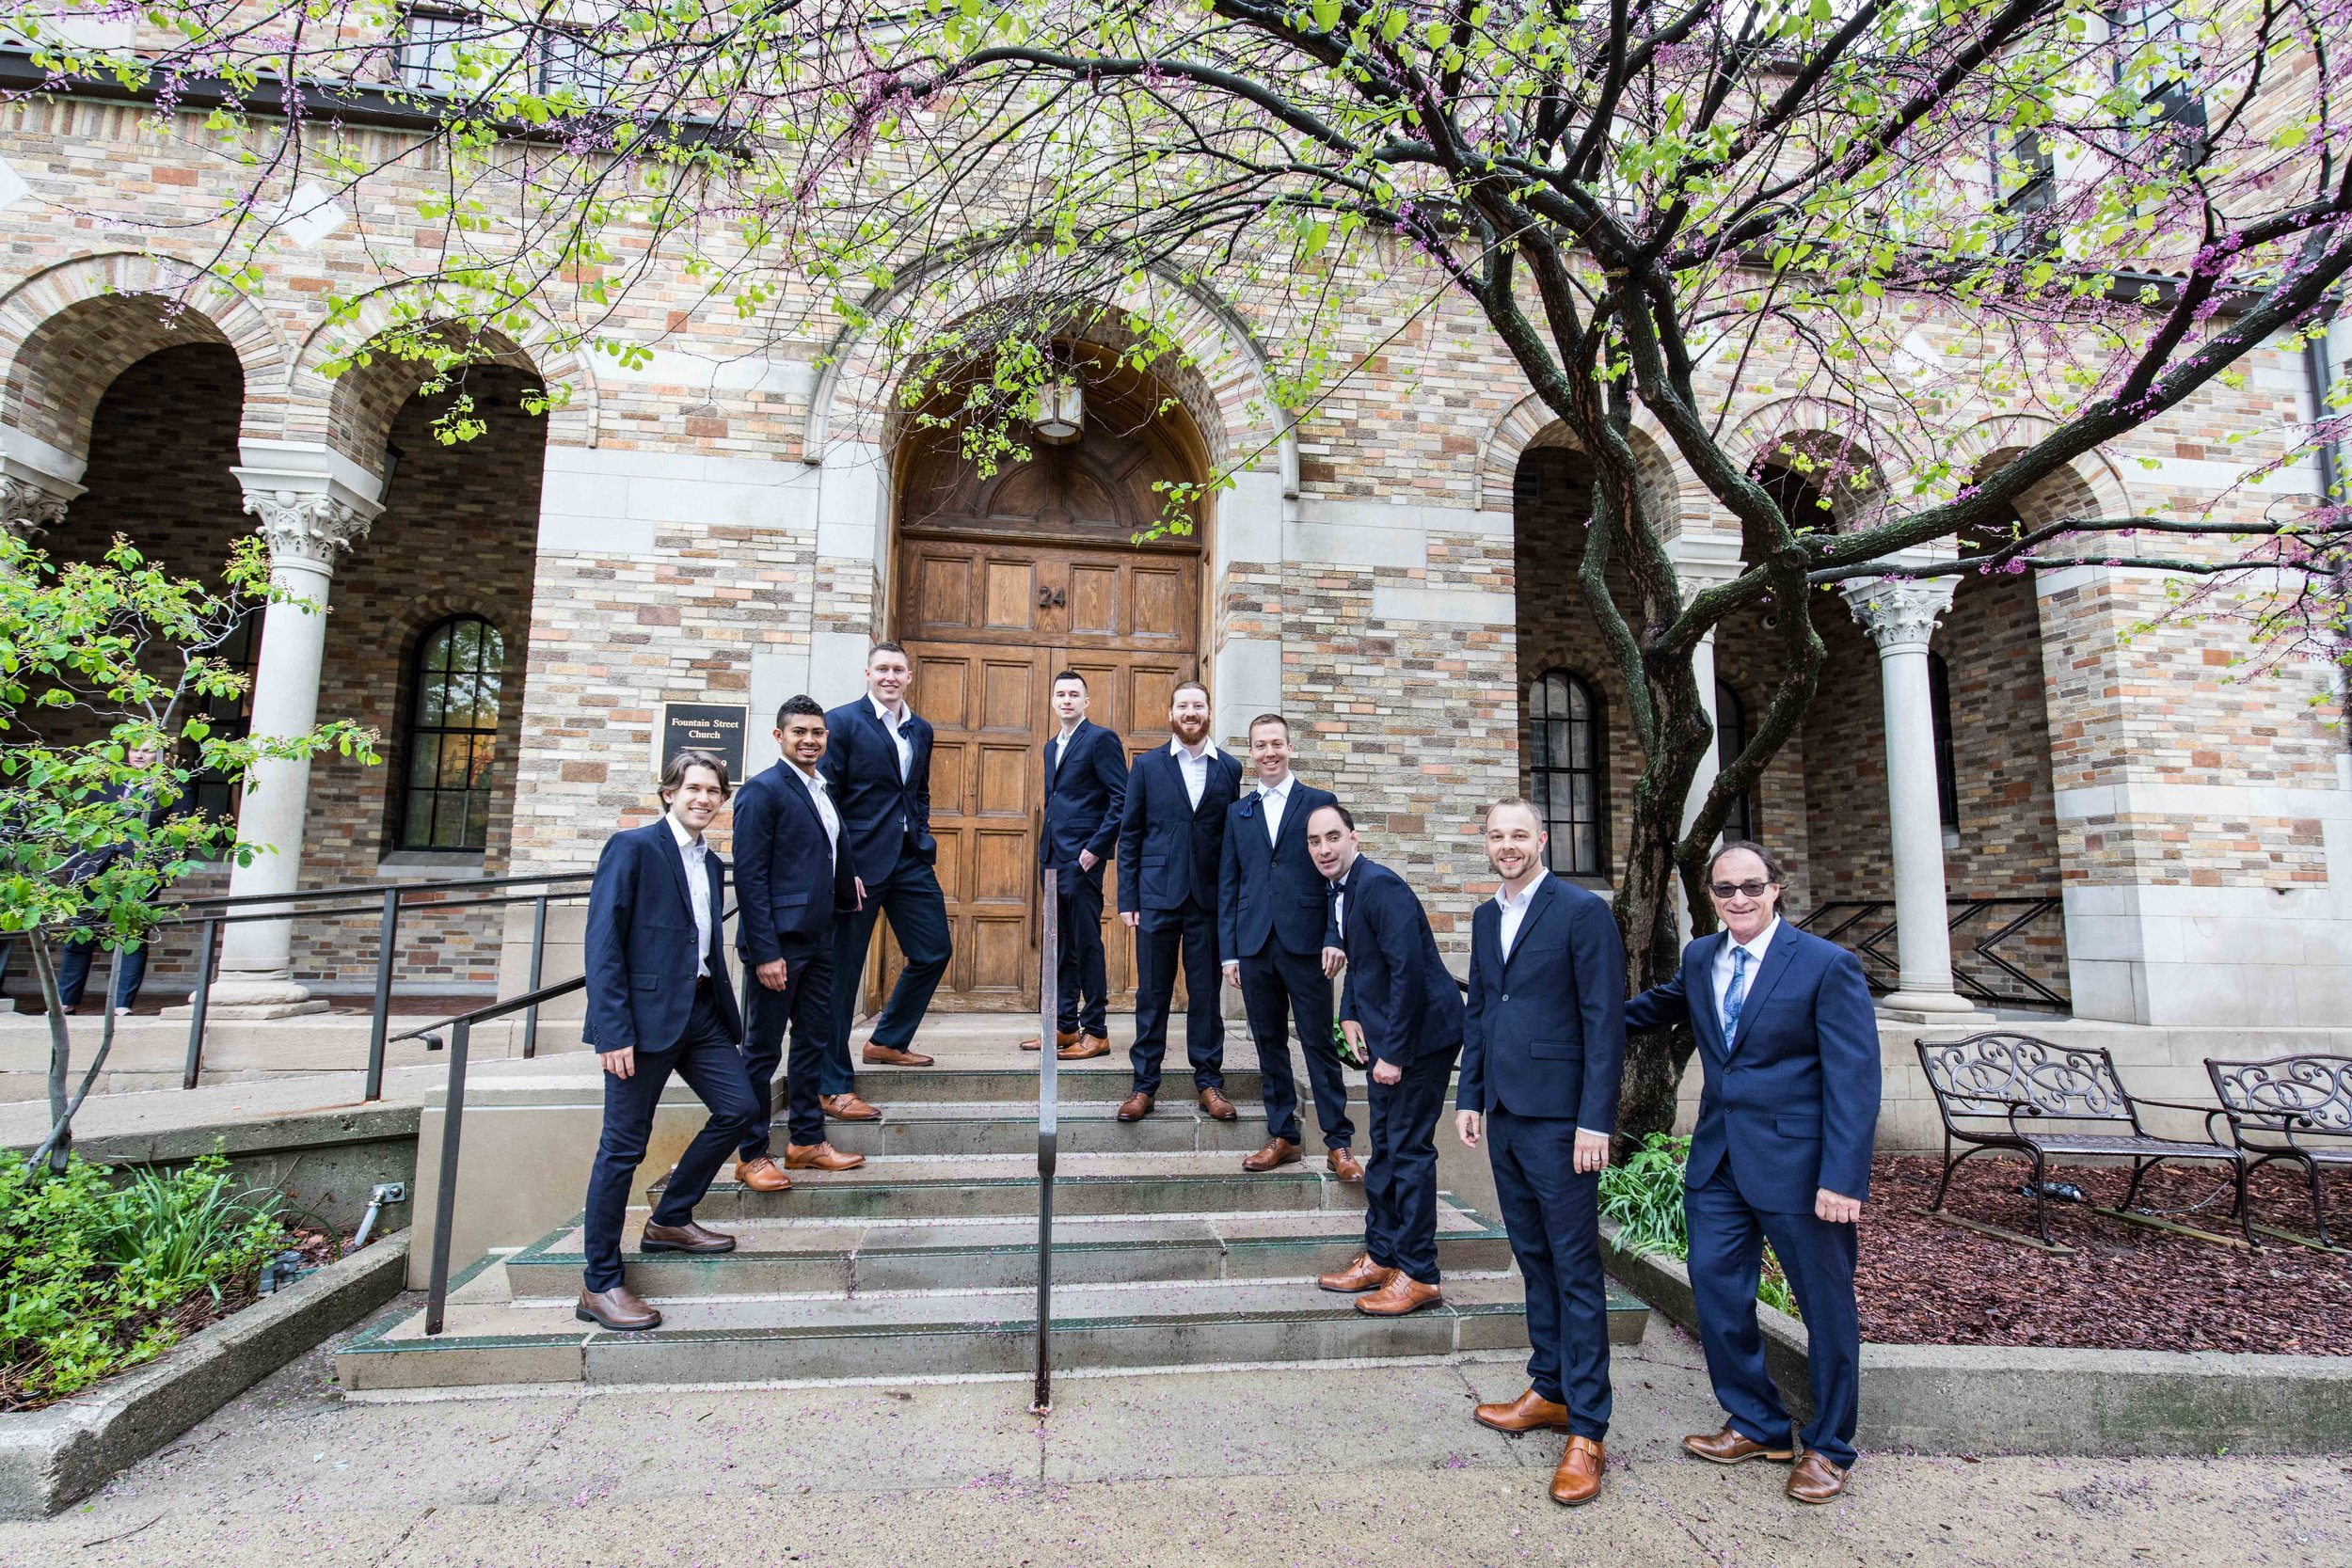 The Groomsmen posing on the steps of the church